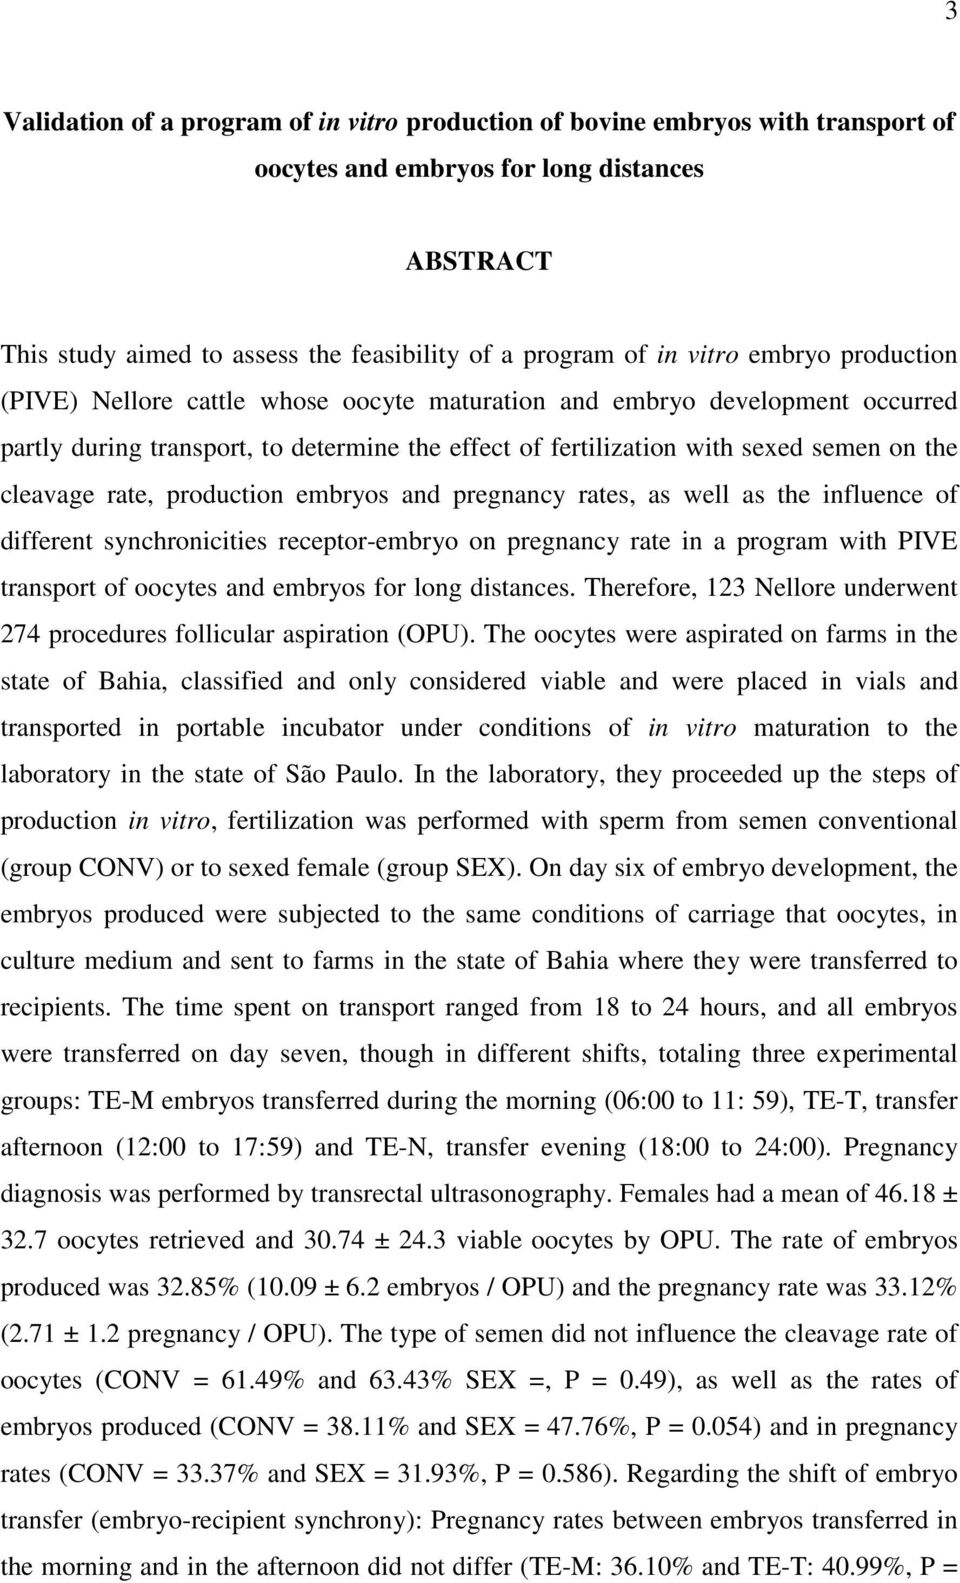 cleavage rate, production embryos and pregnancy rates, as well as the influence of different synchronicities receptor-embryo on pregnancy rate in a program with PIVE transport of oocytes and embryos